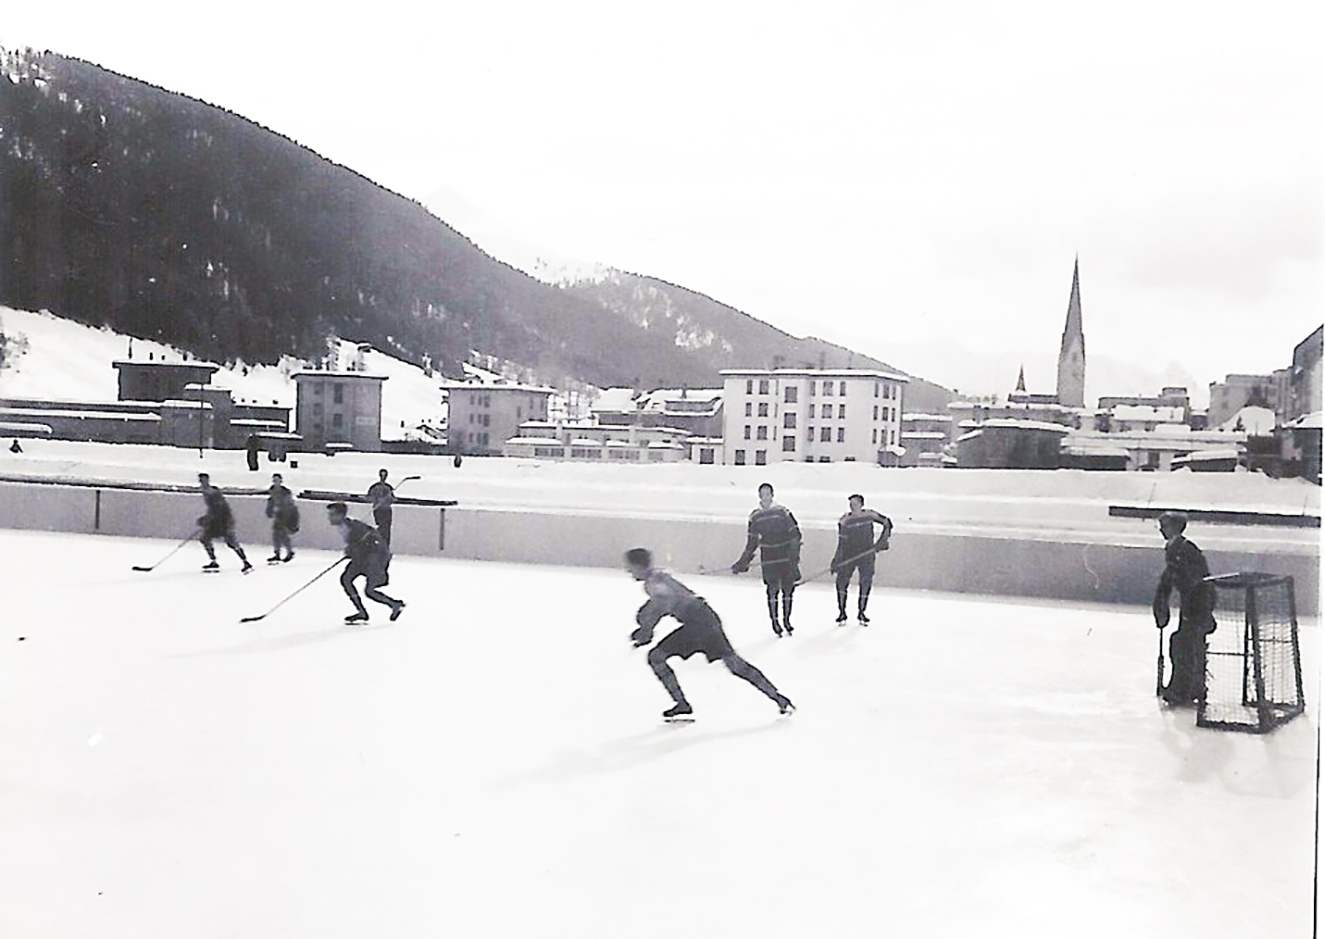 On January 29, 1948, the RCAF Flyers hold their final practice before the Olympic Winter Games in St. Moritz, Switzerland. PHOTO: Courtesy of the estate of Flyers member Reg Schroeter, via his son, Tom.*